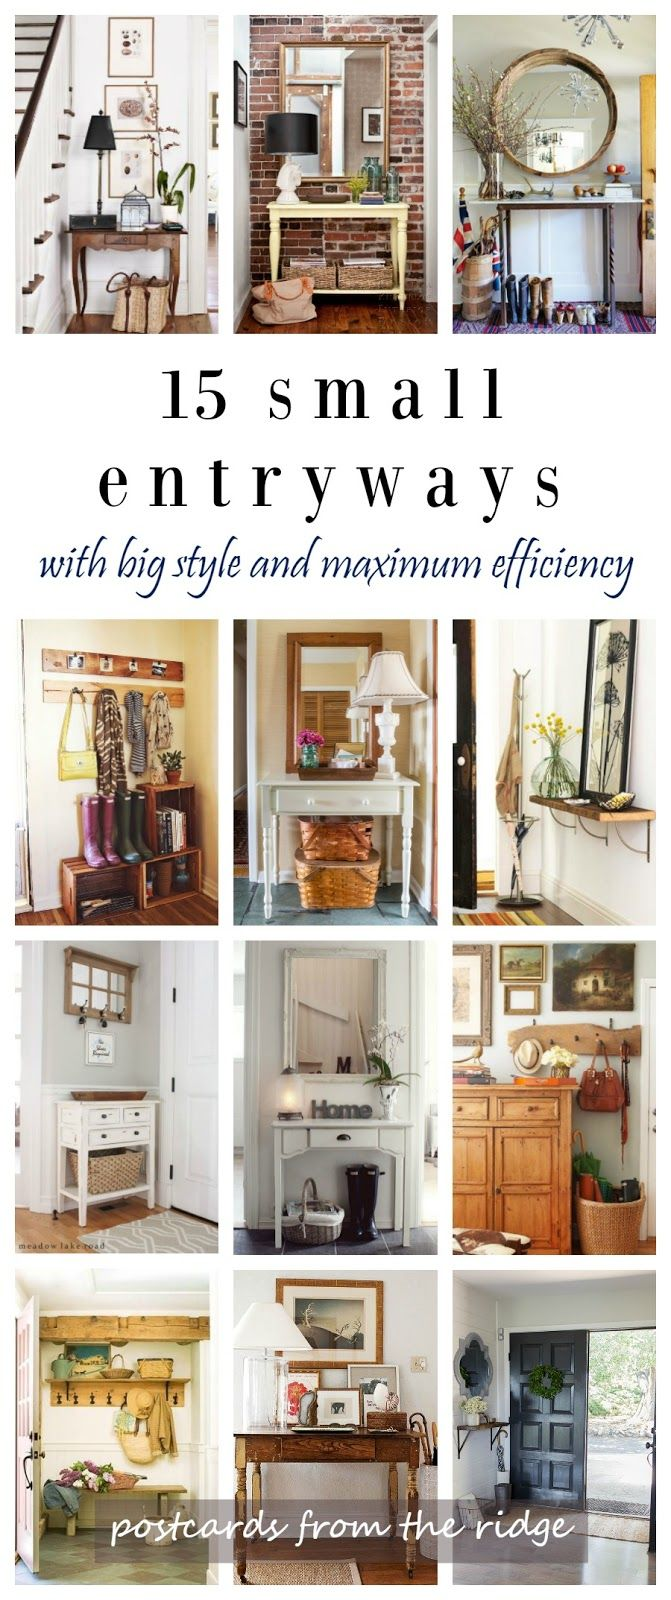 15 Fresh Ideas for Small Entryways | Pinterest | Small entryways ...